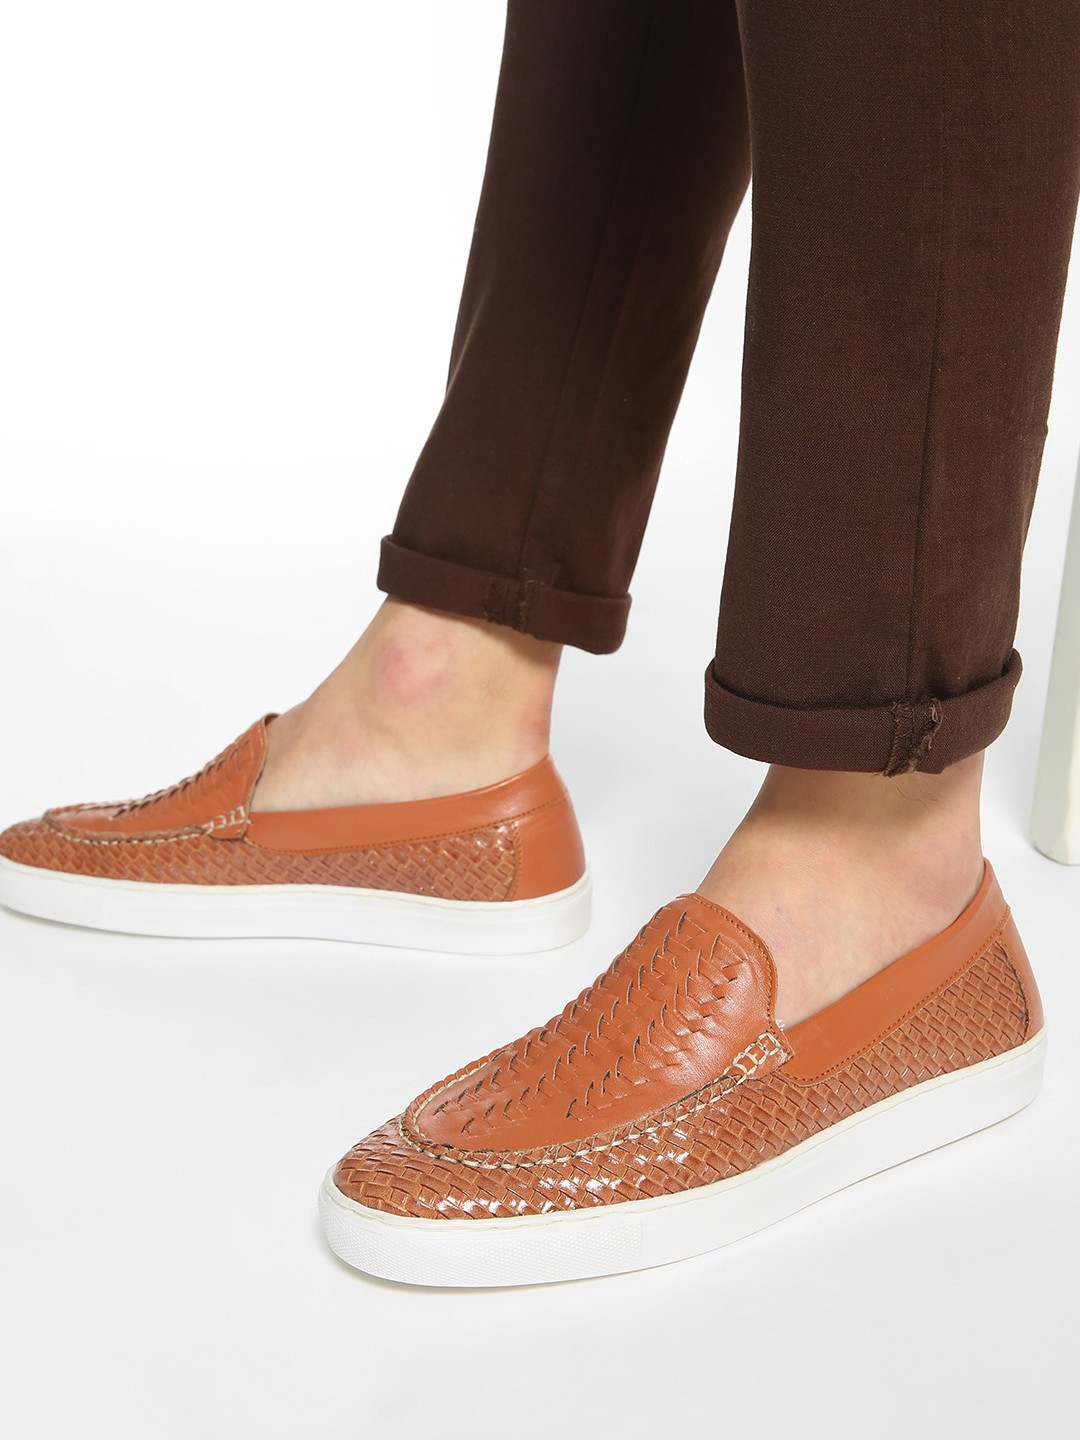 Bolt Of The Good Stuff Tan Basket Weave Contrast Sole Loafers 1